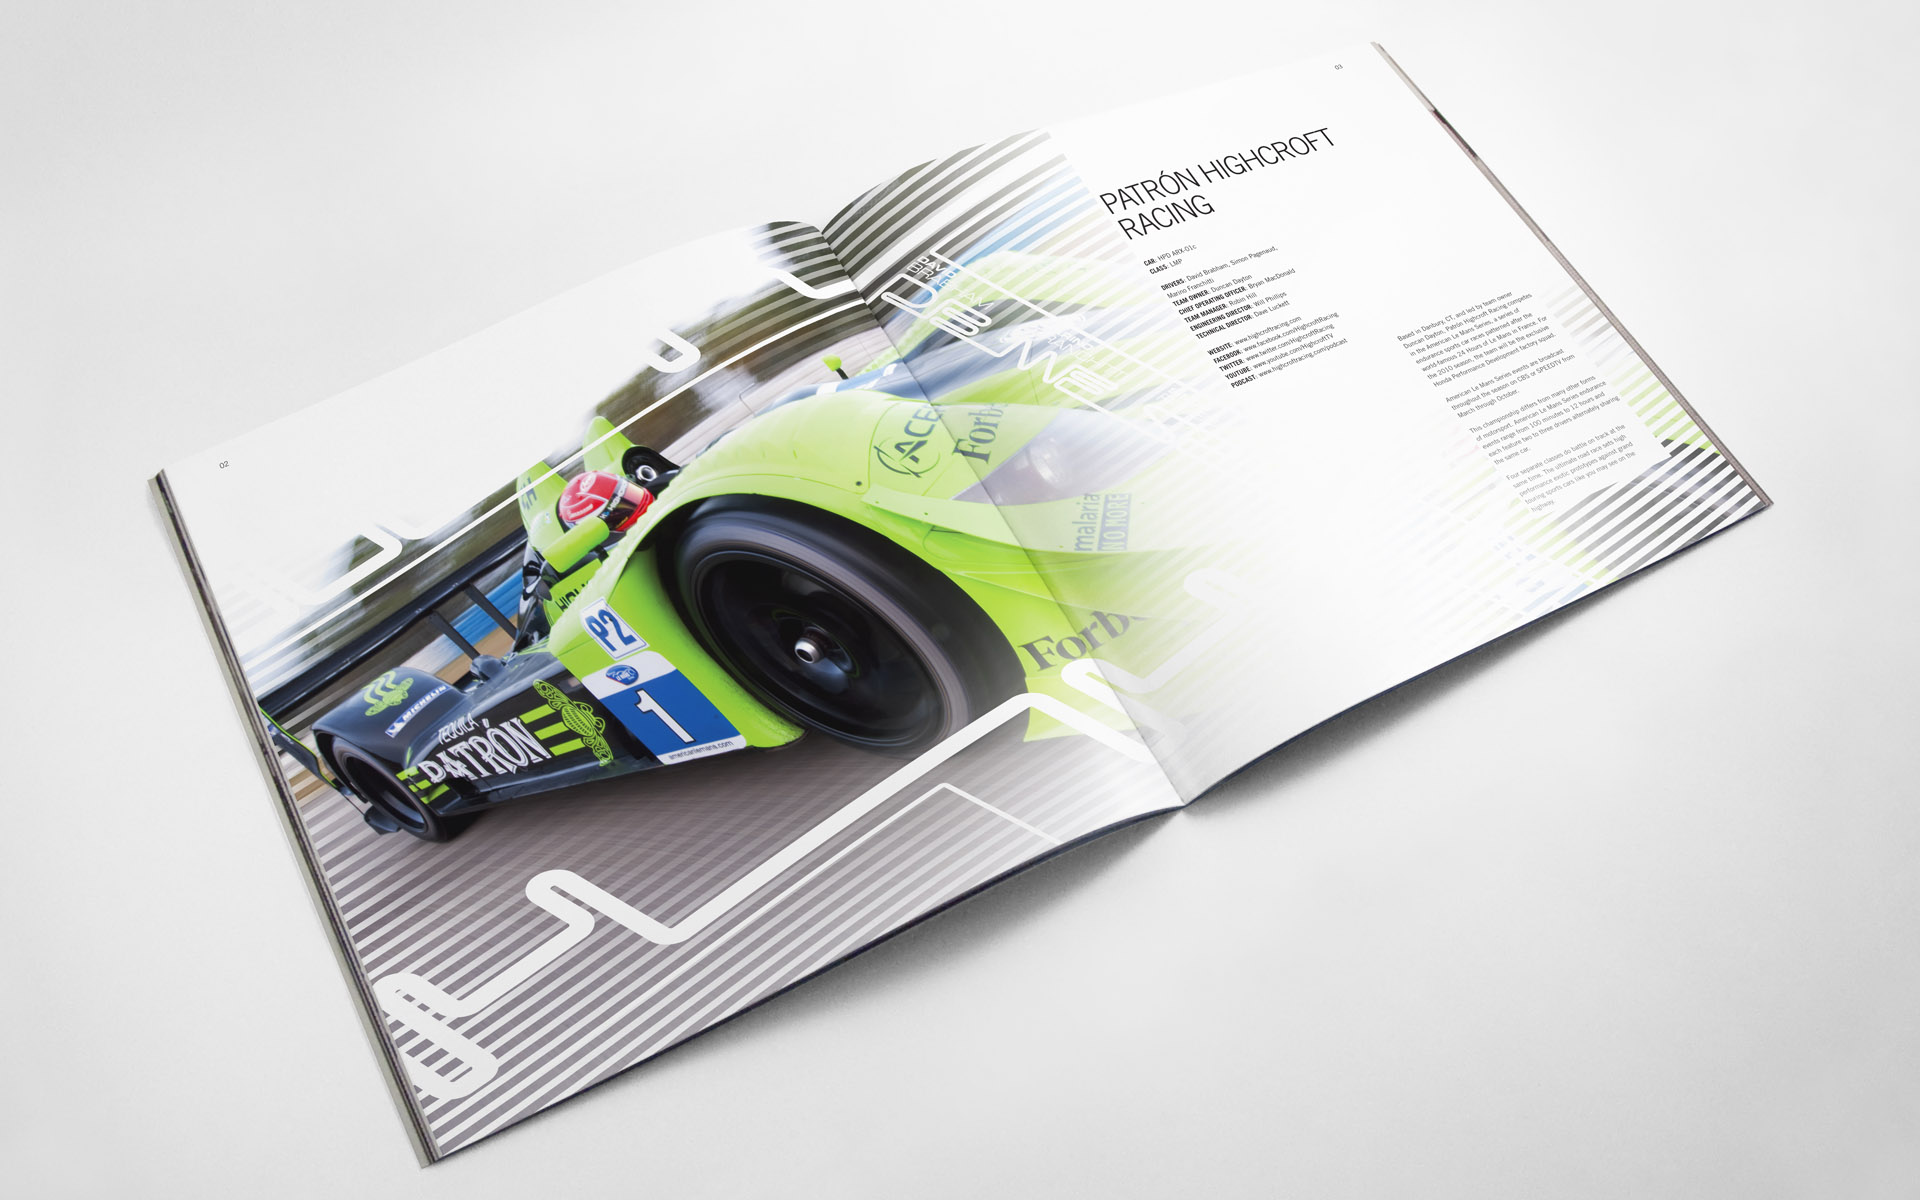 2010 Pátron Highcroft Racing Media Kit